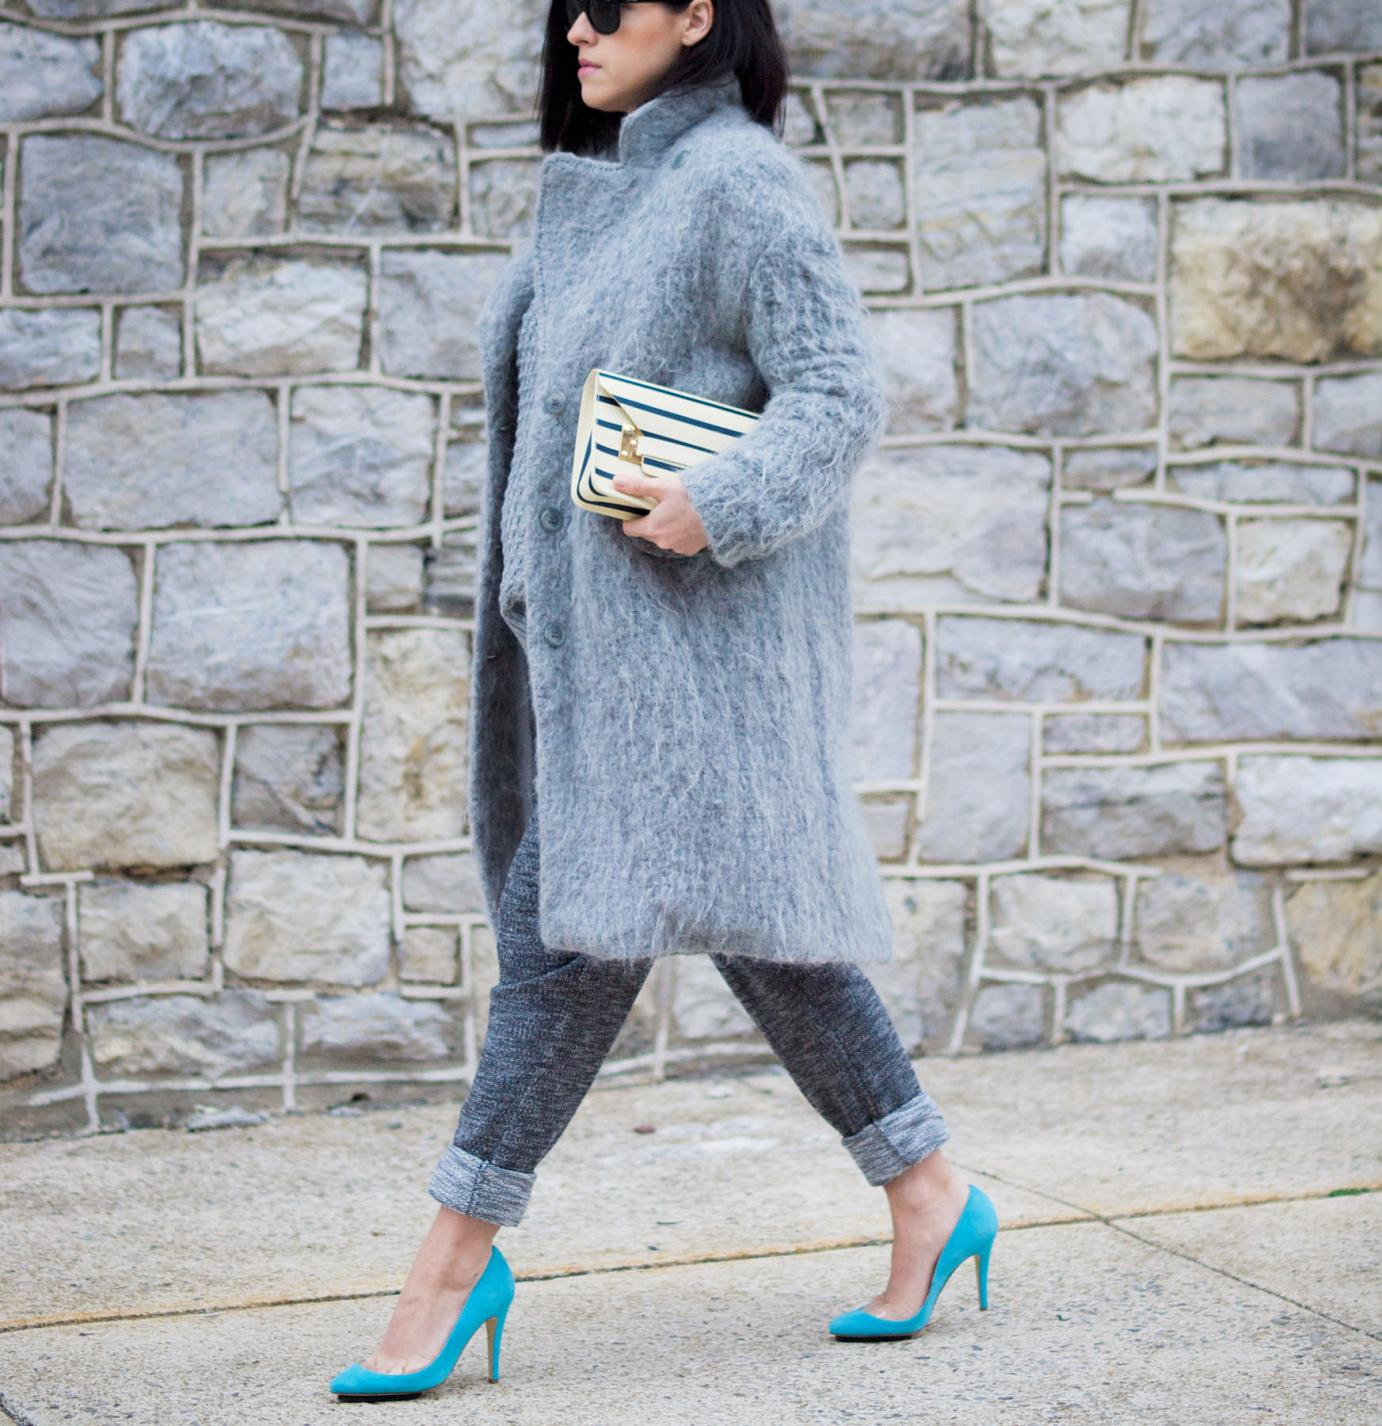 bittersweet colours, grey coat, fuzzy coat, grey outfit, konstantina tzovolou shoes, sophie hulme bag, fall street style, street style, maternity style, 25 weeks, sweater weather,